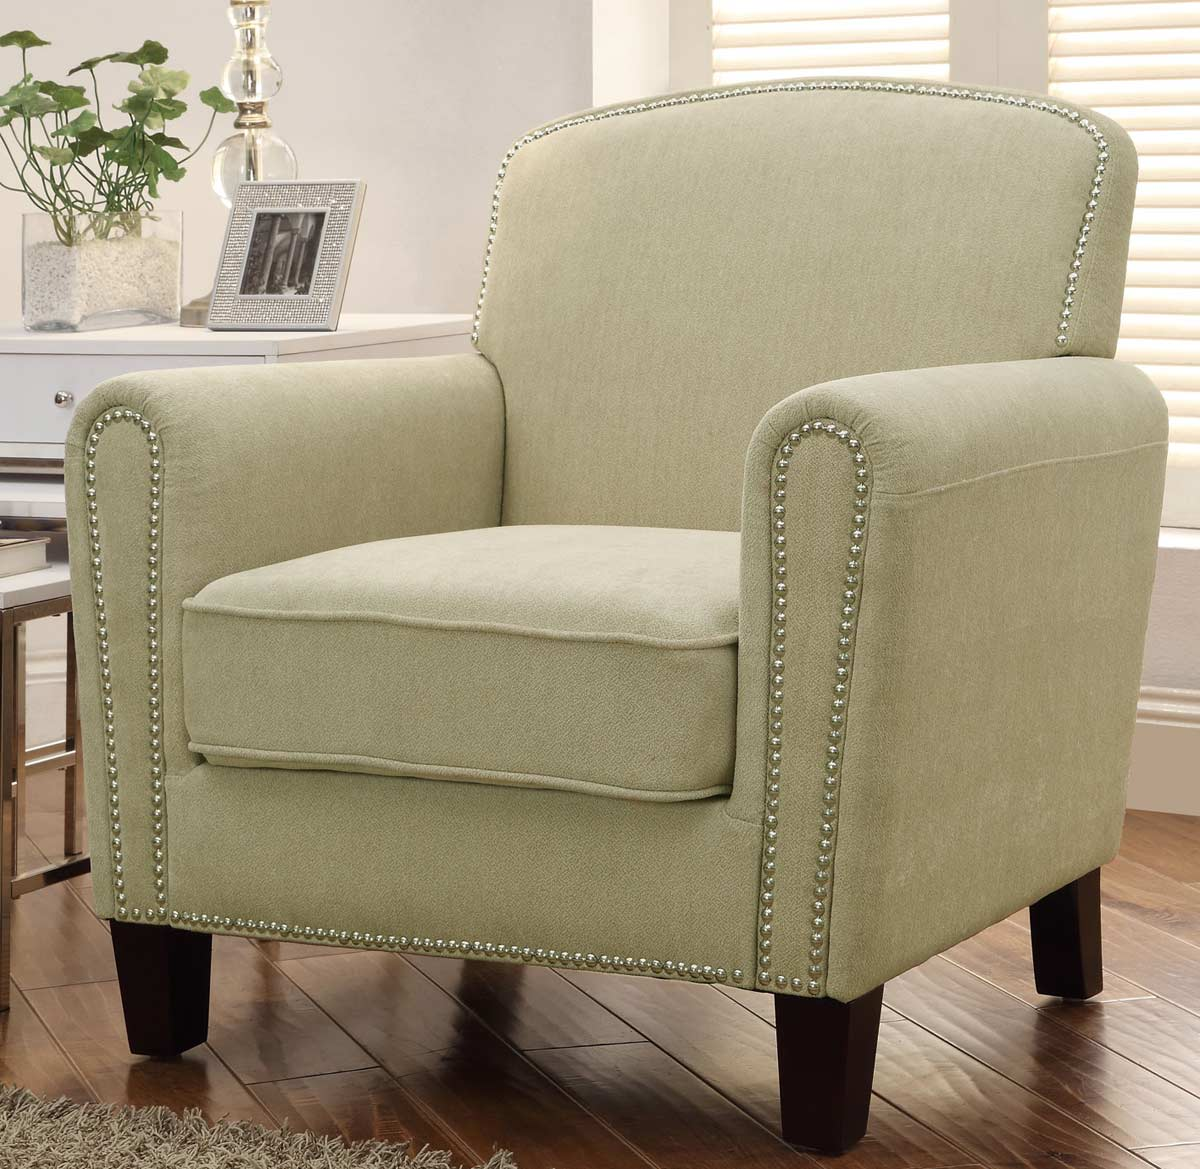 Coaster 902142 Accent Chair - Beige